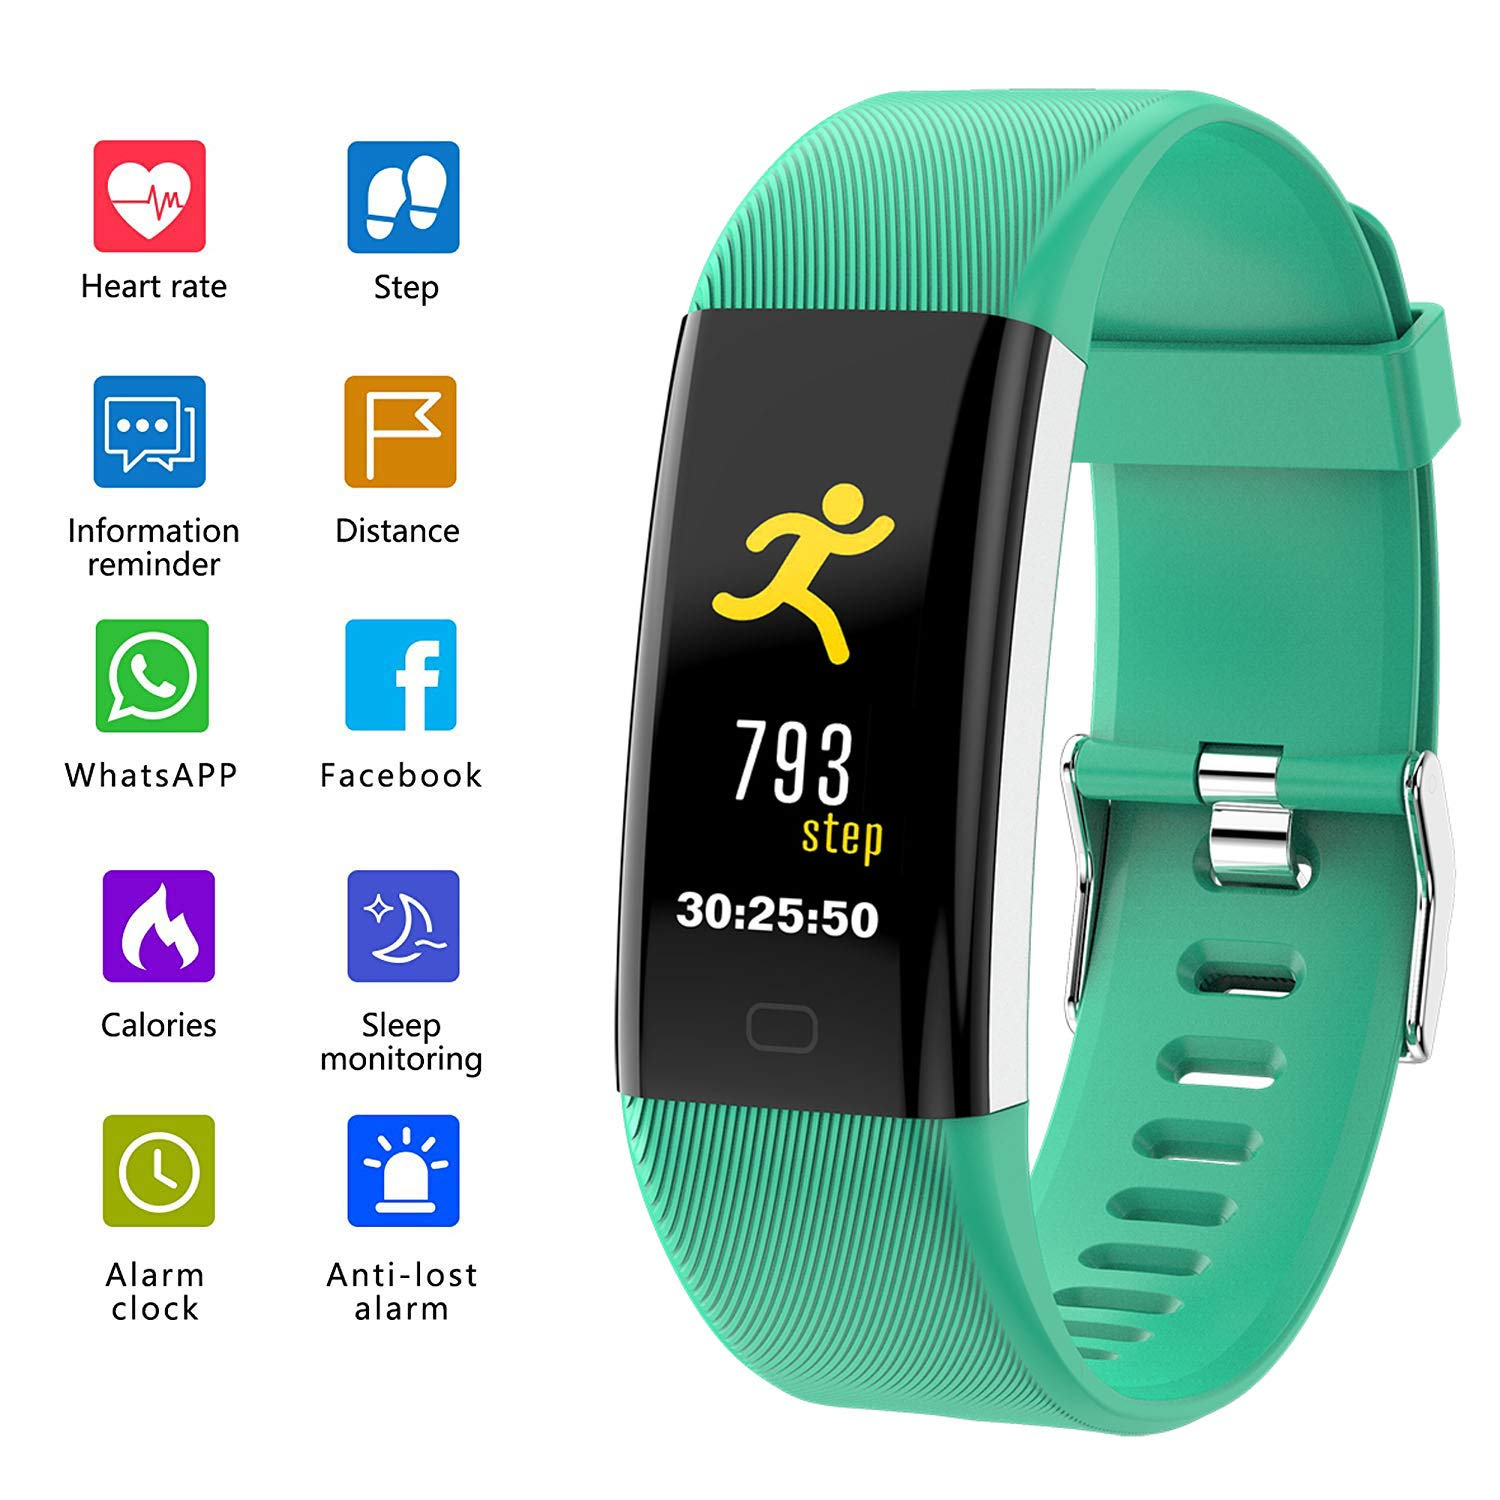 ANGGO Fitness Tracker with Heart Rate Monitor, Activity Tracker Watch IP68 Waterproof Smart Fitness Band with Step Counter, Sleep Monitor, Pedometer Watch for Kids Women and Men (Green)